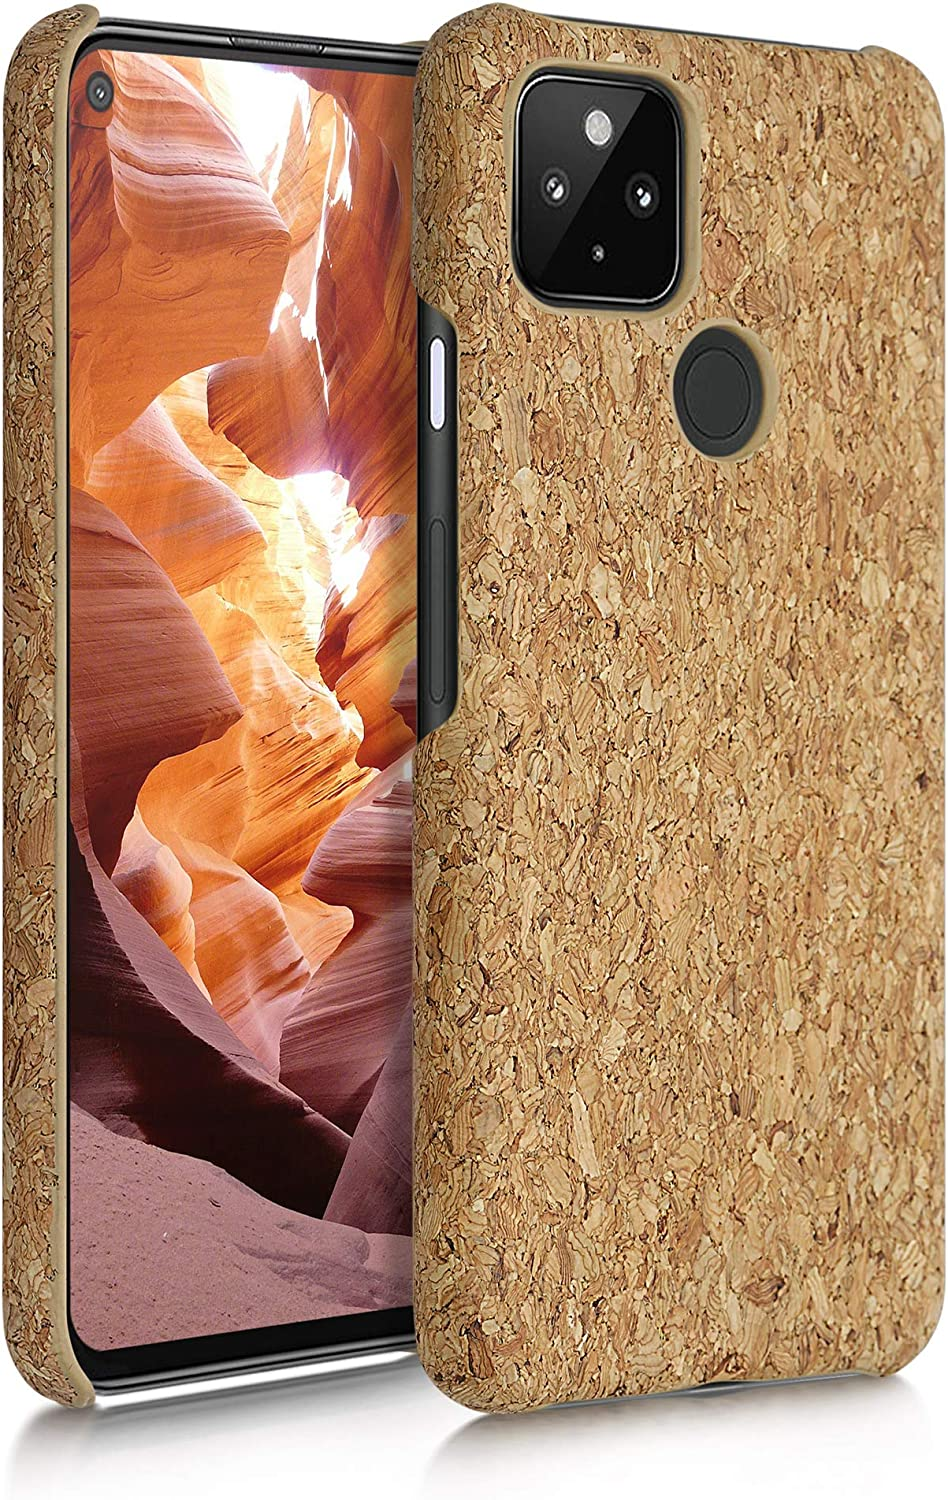 kwmobile Case Compatible with Google Pixel 4a 5G - Case Protective Cork Mobile Cell Phone Cover - Light Brown